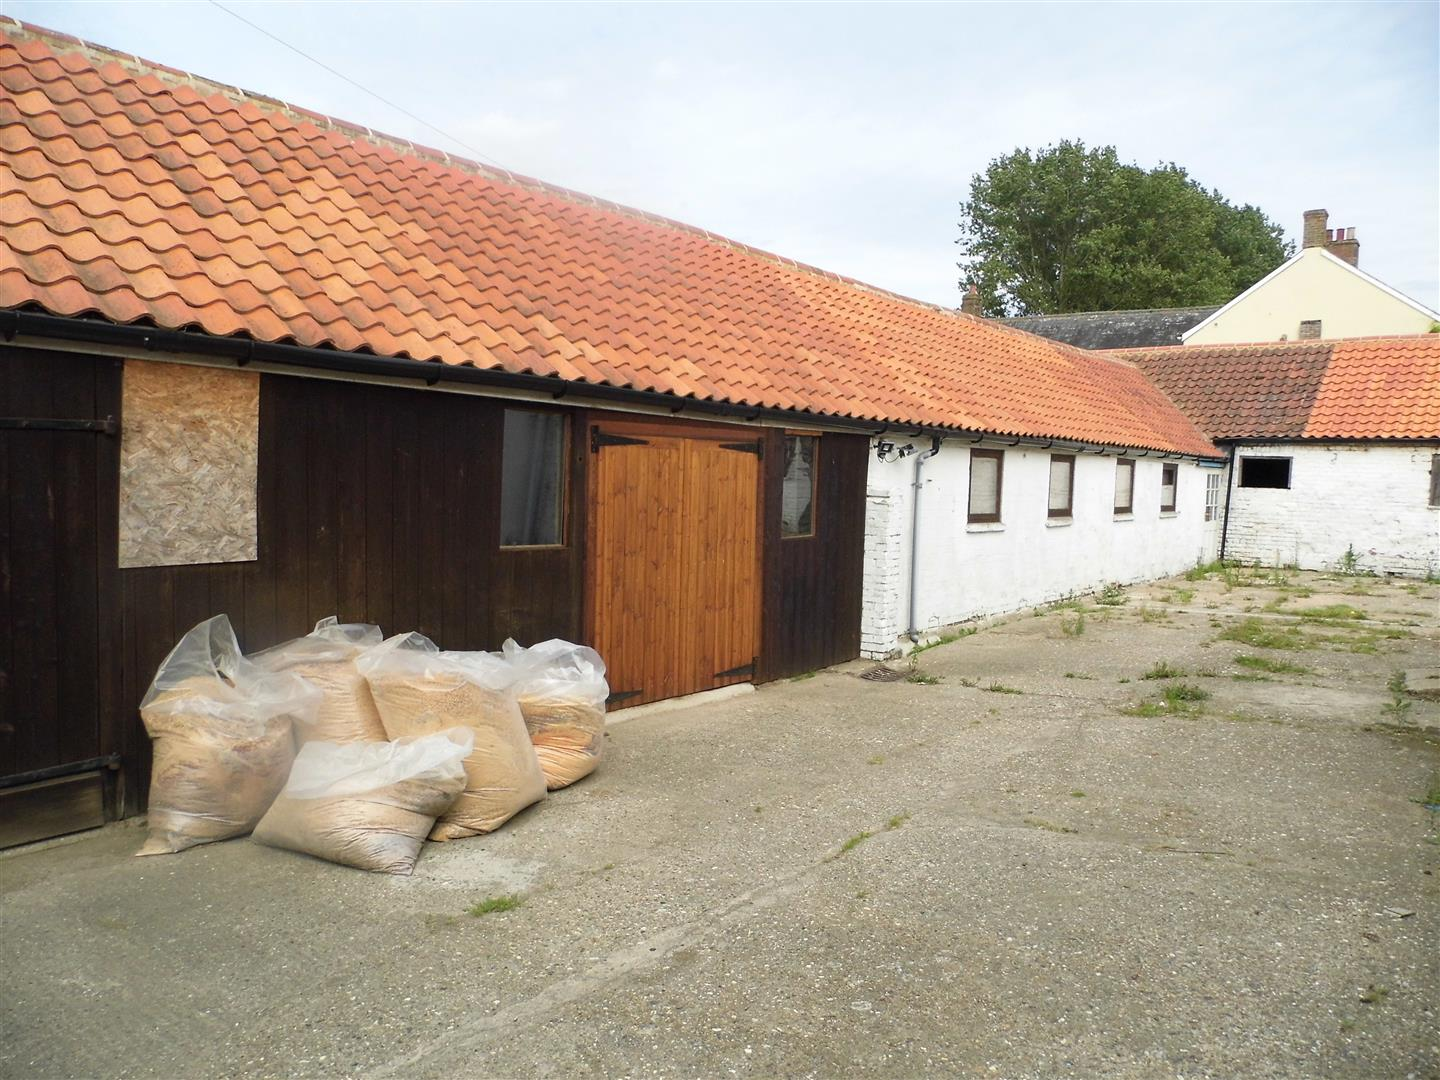 Commercial property to rent in King's Lynn, PE33 0SH, PE33